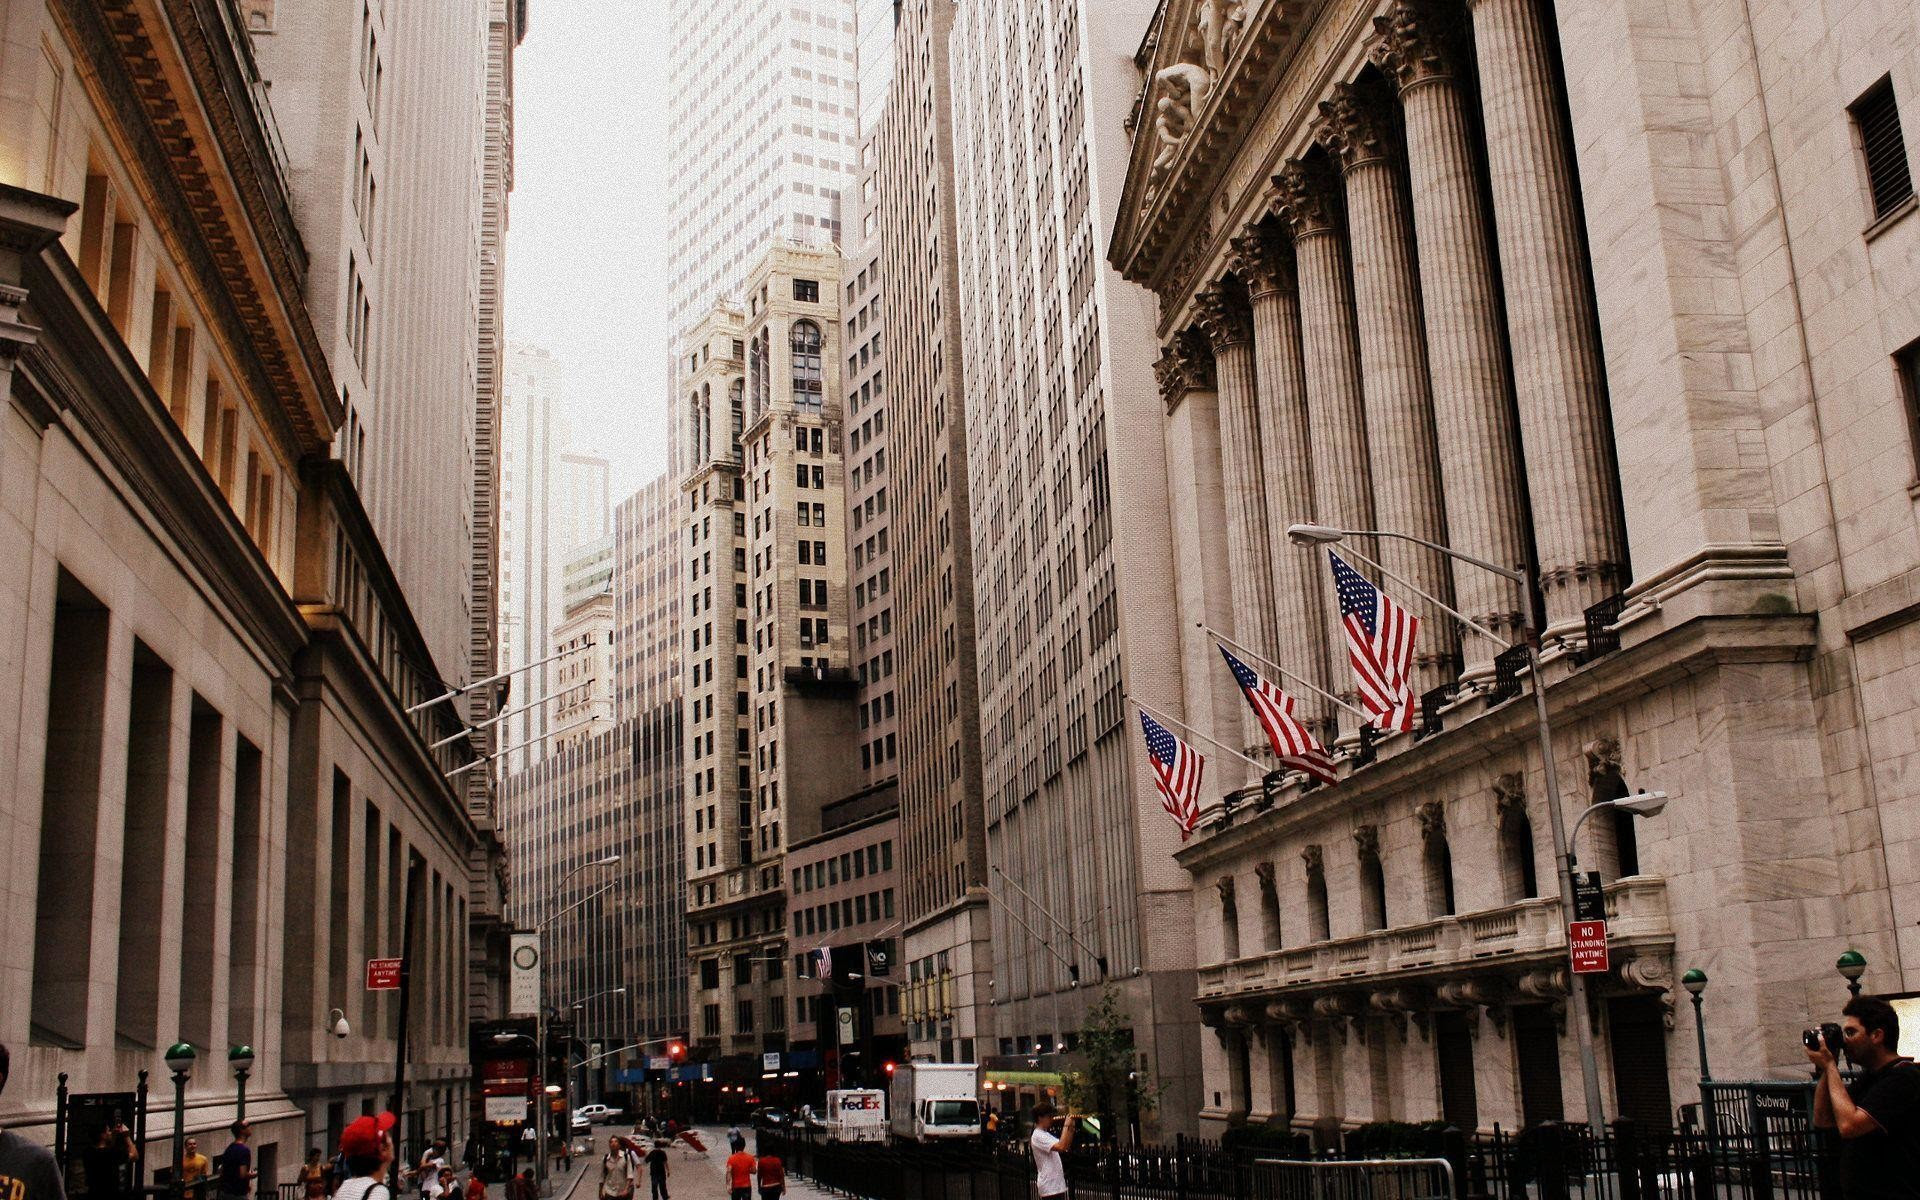 Wall Street Wallpaper Hd 69 Images